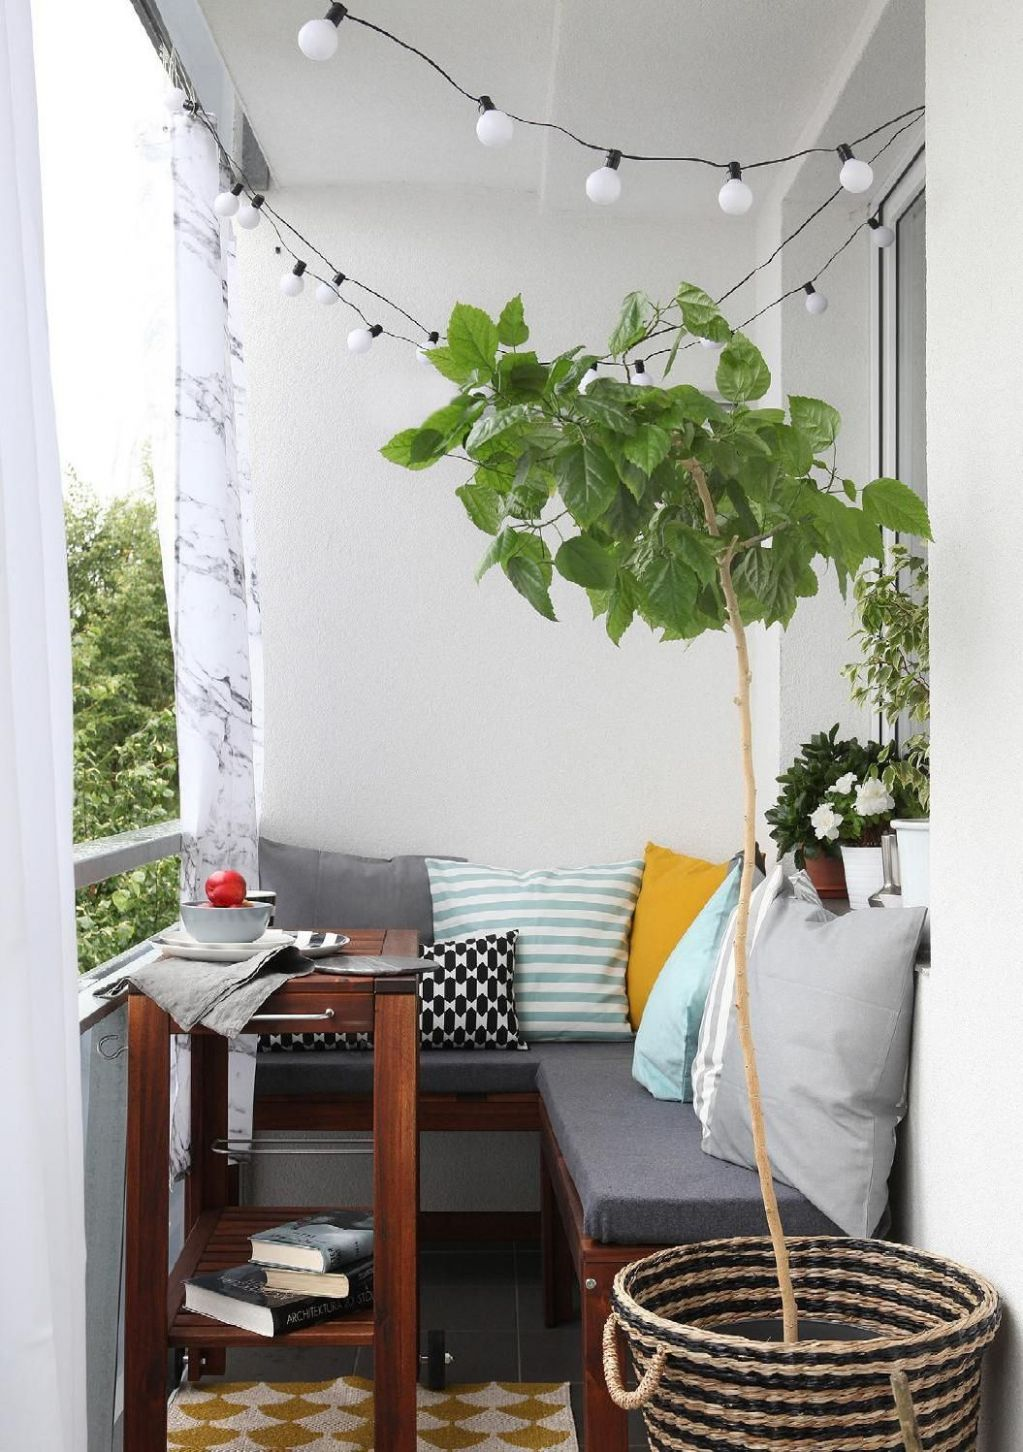 SOFFA 12 / MEN, English edition (With images) | Apartment balcony ..